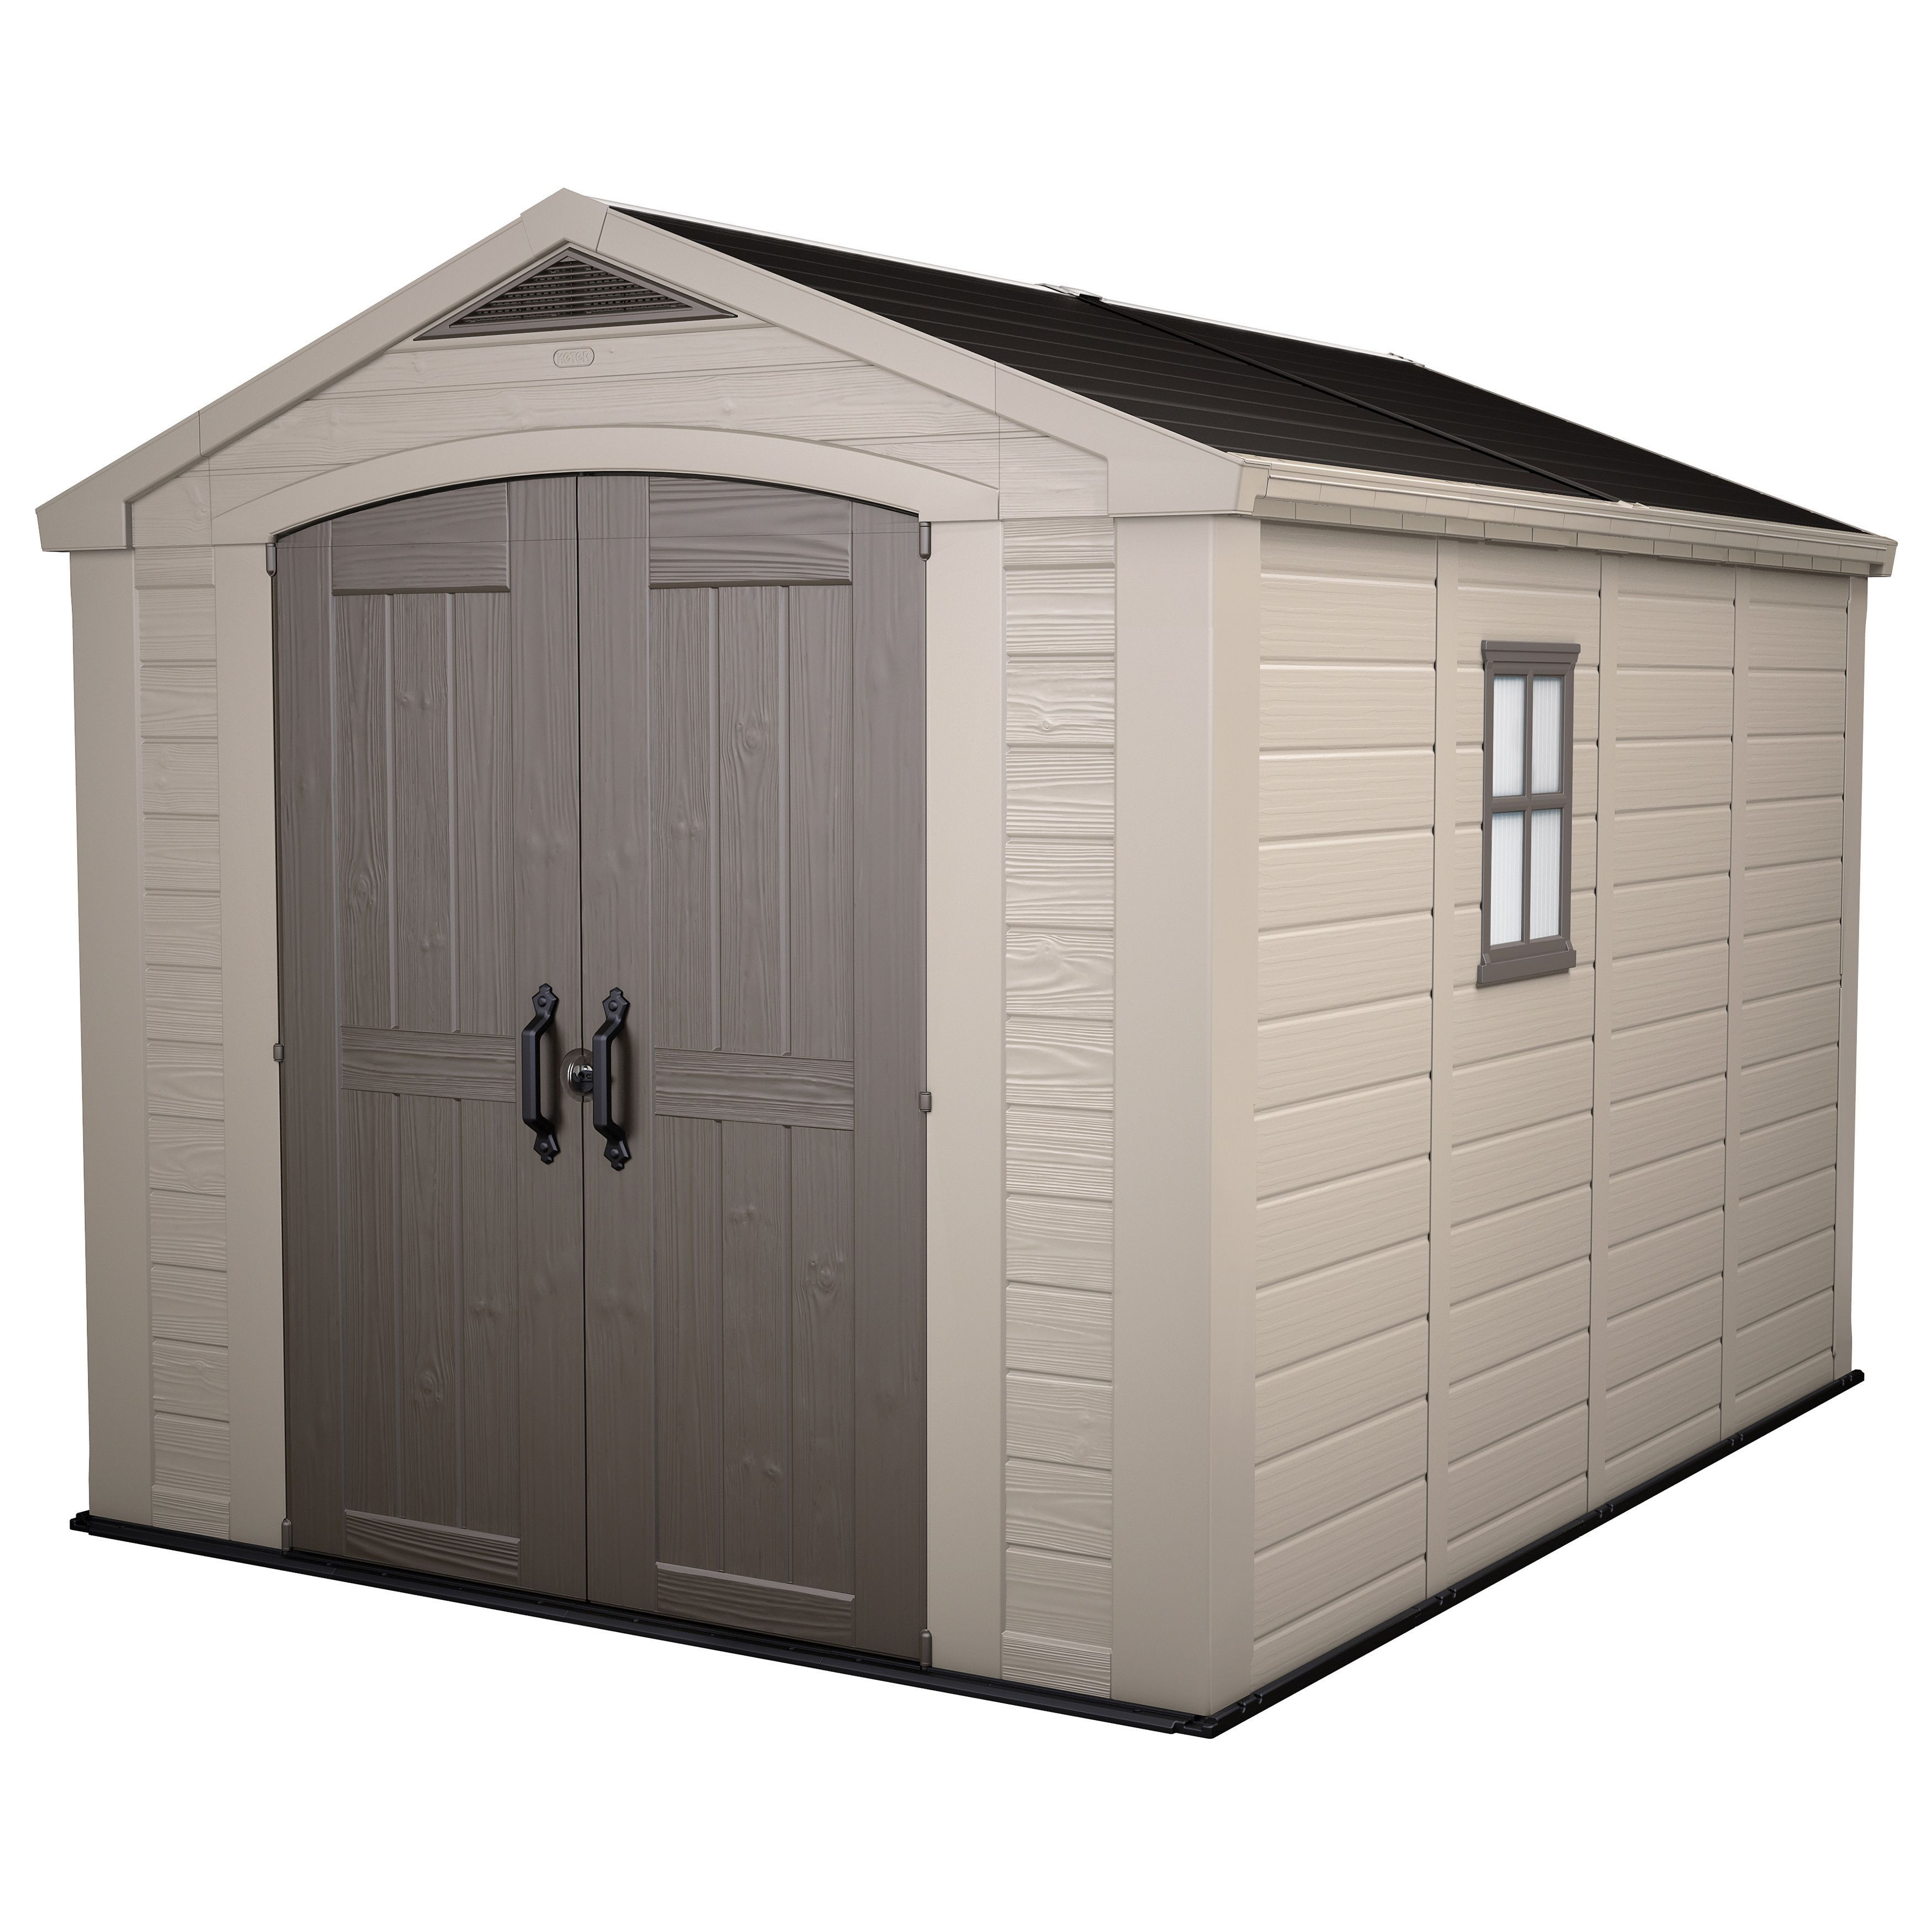 Online Shopping Bedding Furniture Electronics Jewelry Clothing More Garden Storage Shed Plastic Sheds Shed Storage